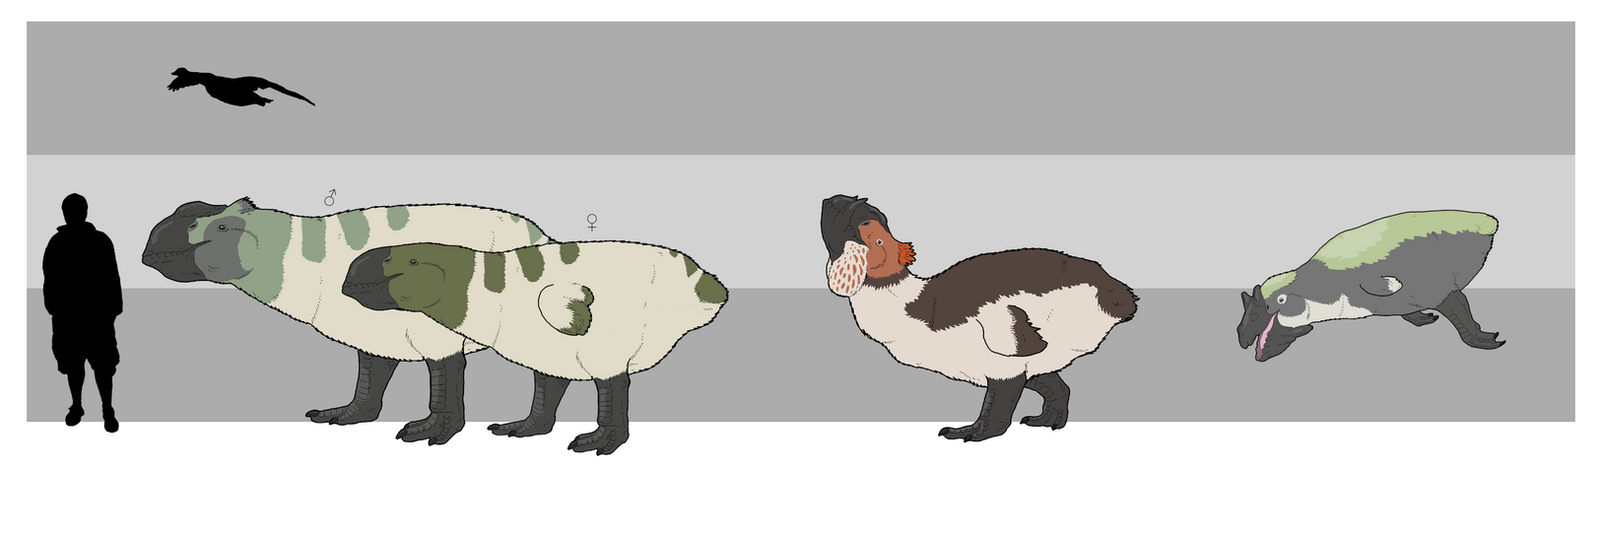 Megagoose Size Chart by WSnyder